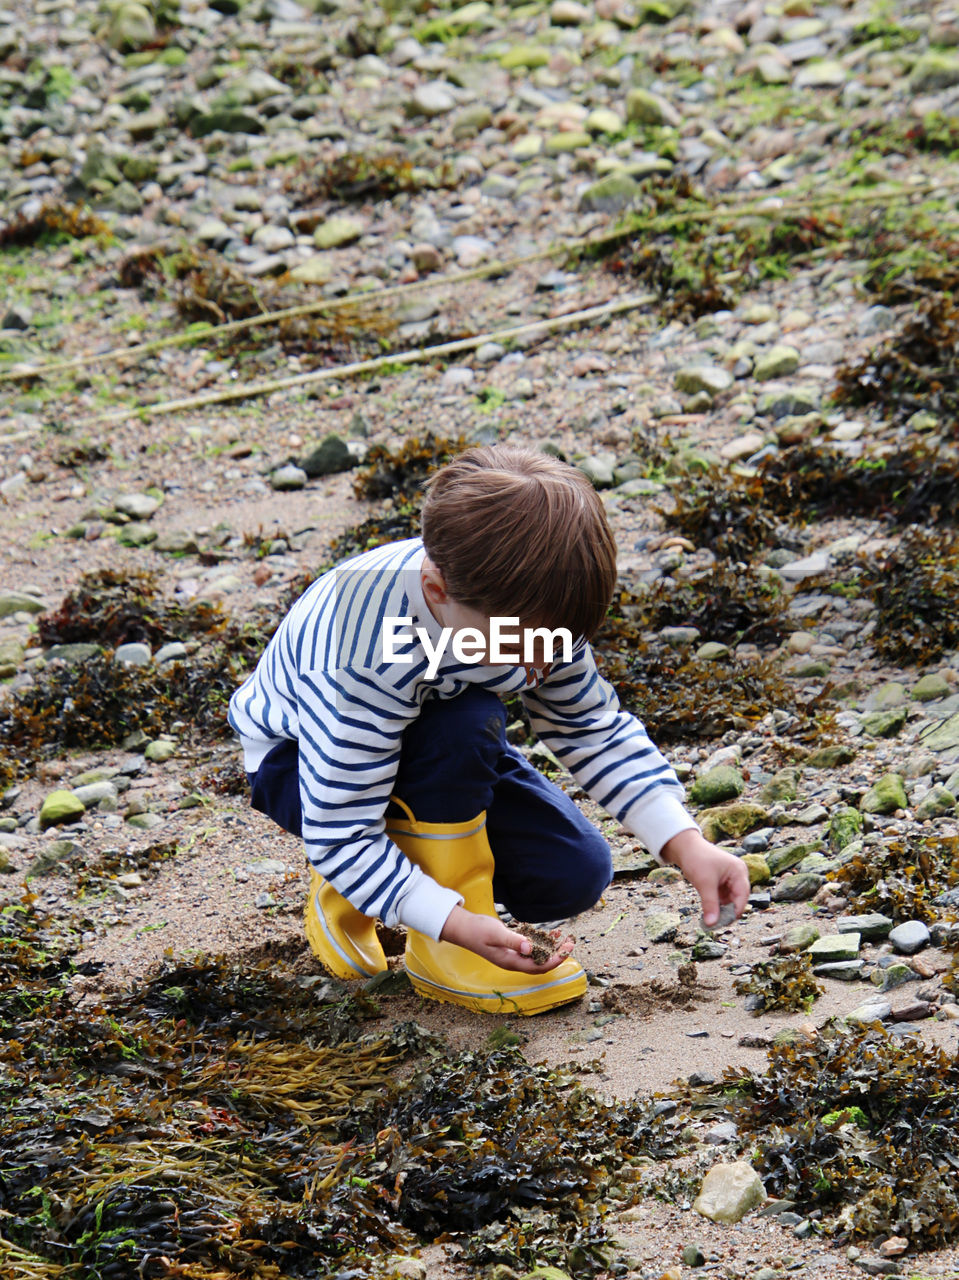 High angle view of boy on the shore collectiong stones